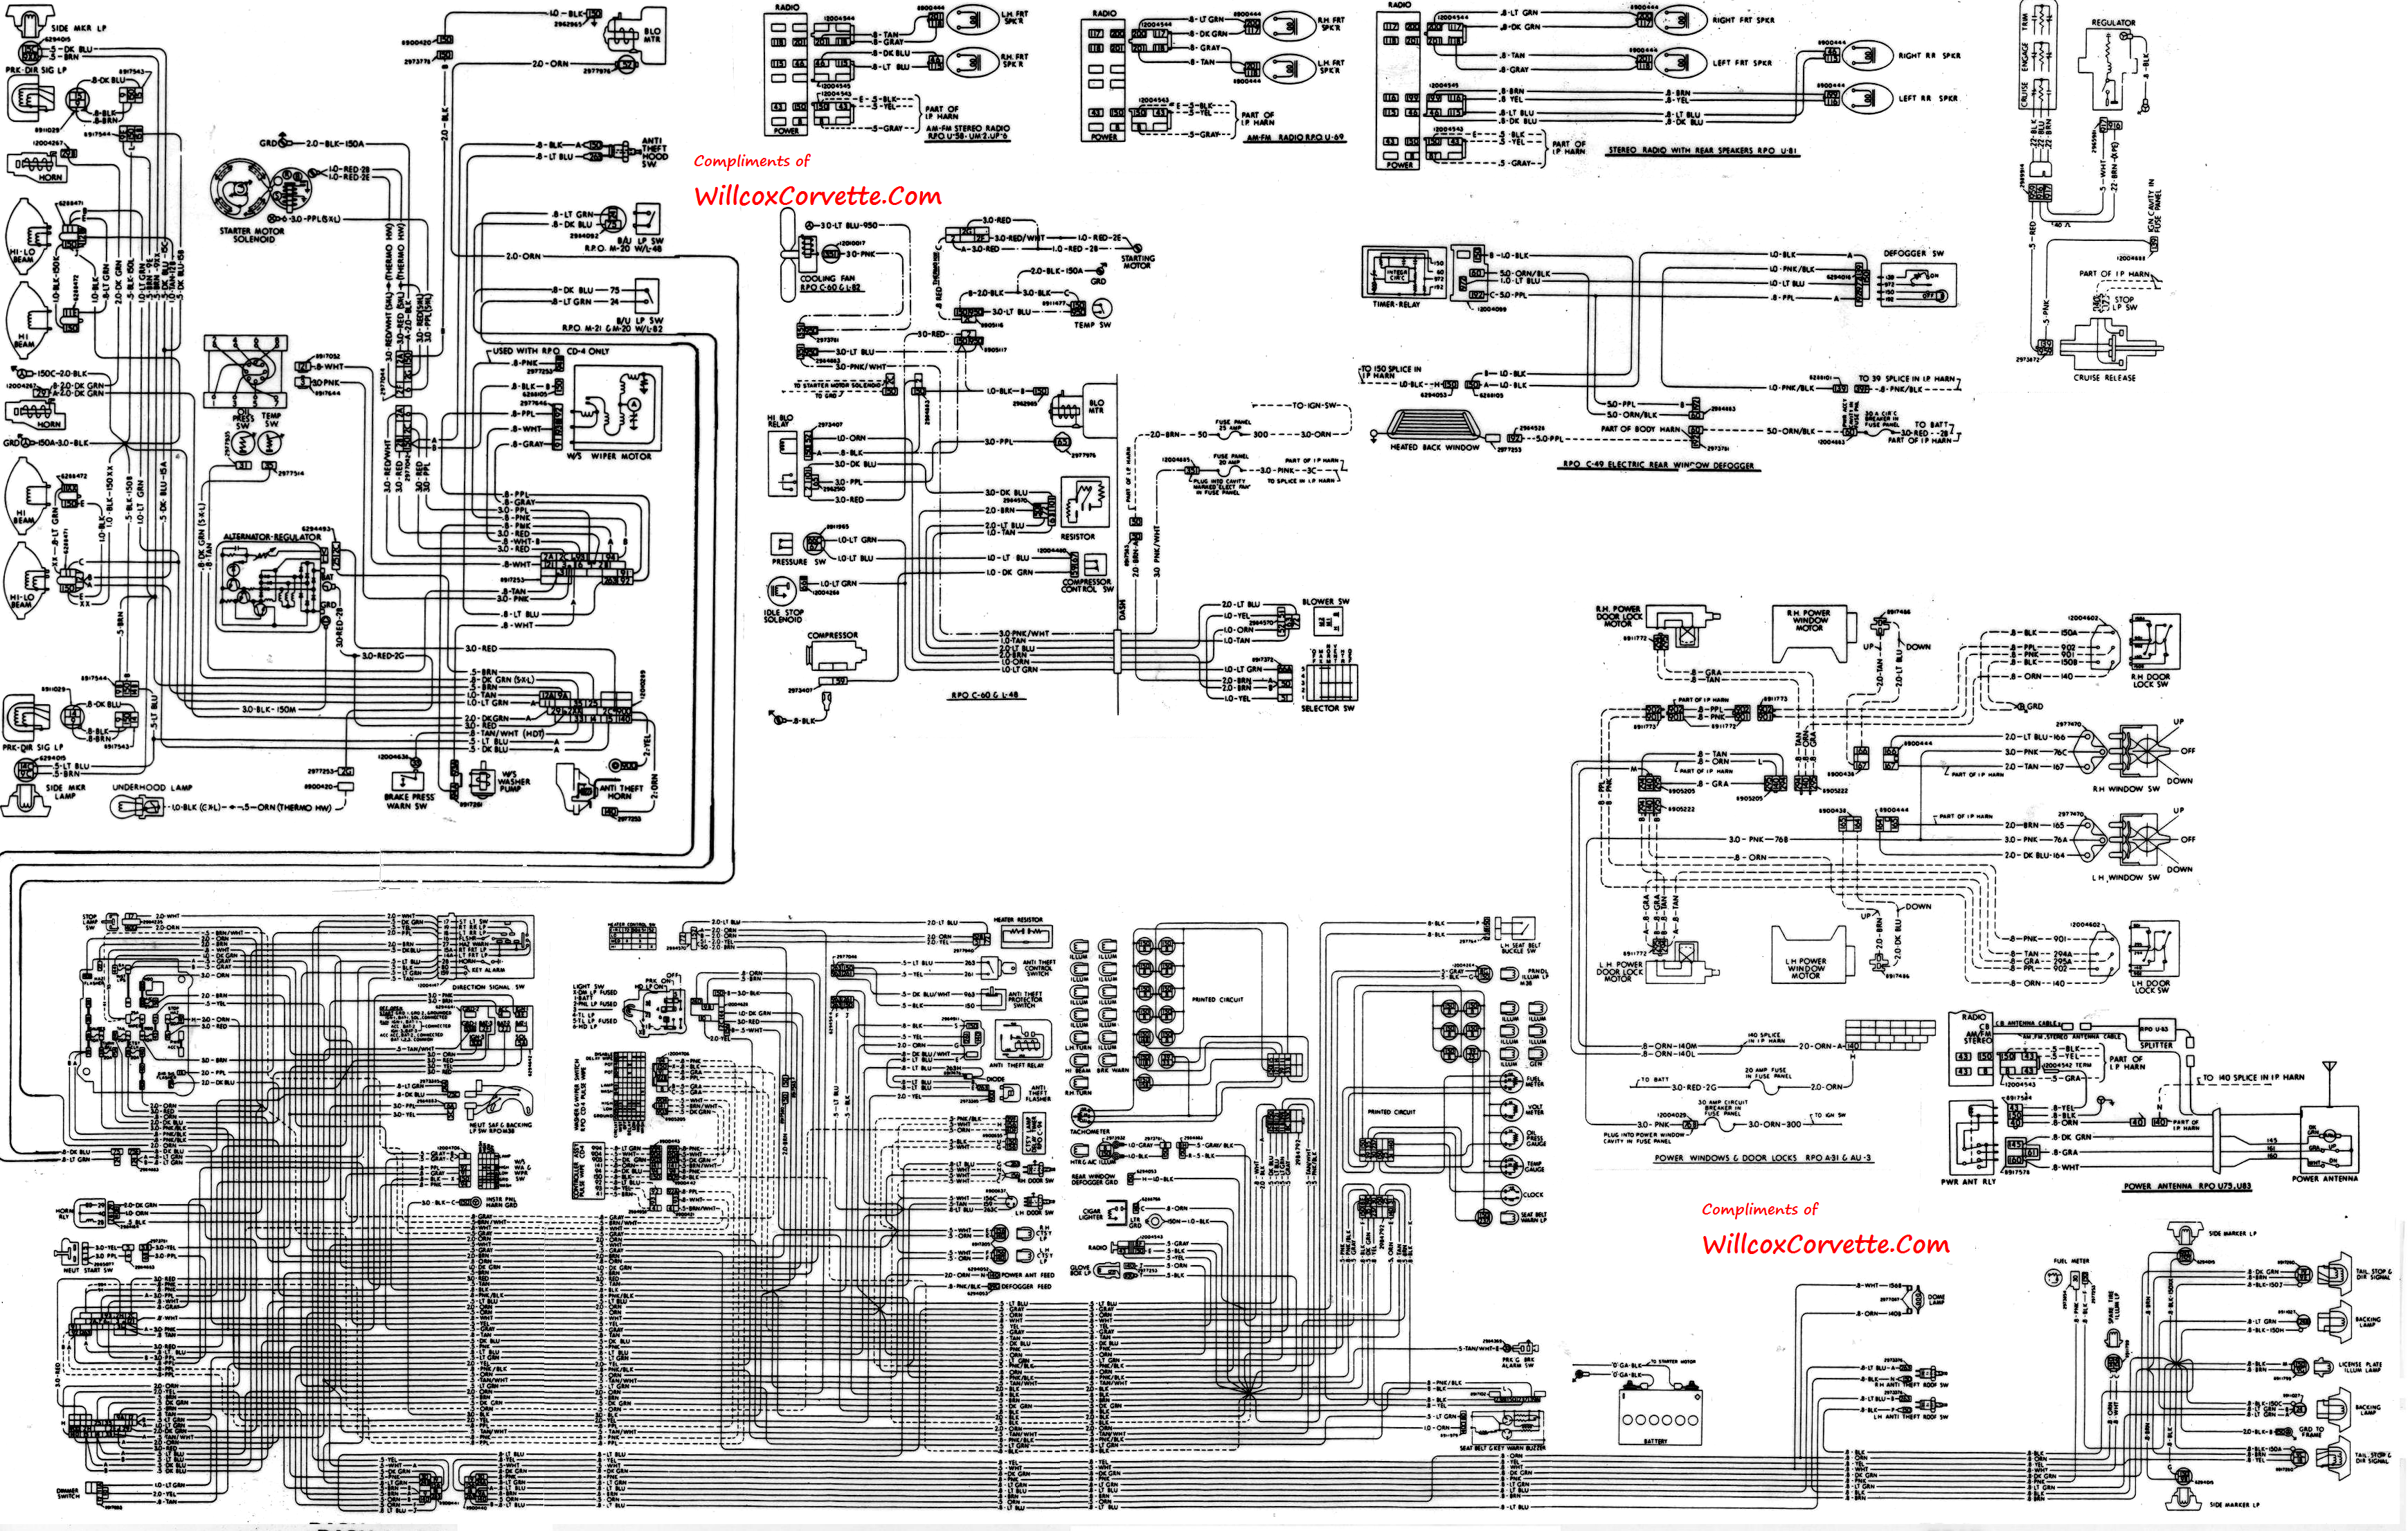 1979 wire diagram 1979 corvette tracer wiring diagram tracer schematic willcox 2002 corvette wiring diagrams at alyssarenee.co